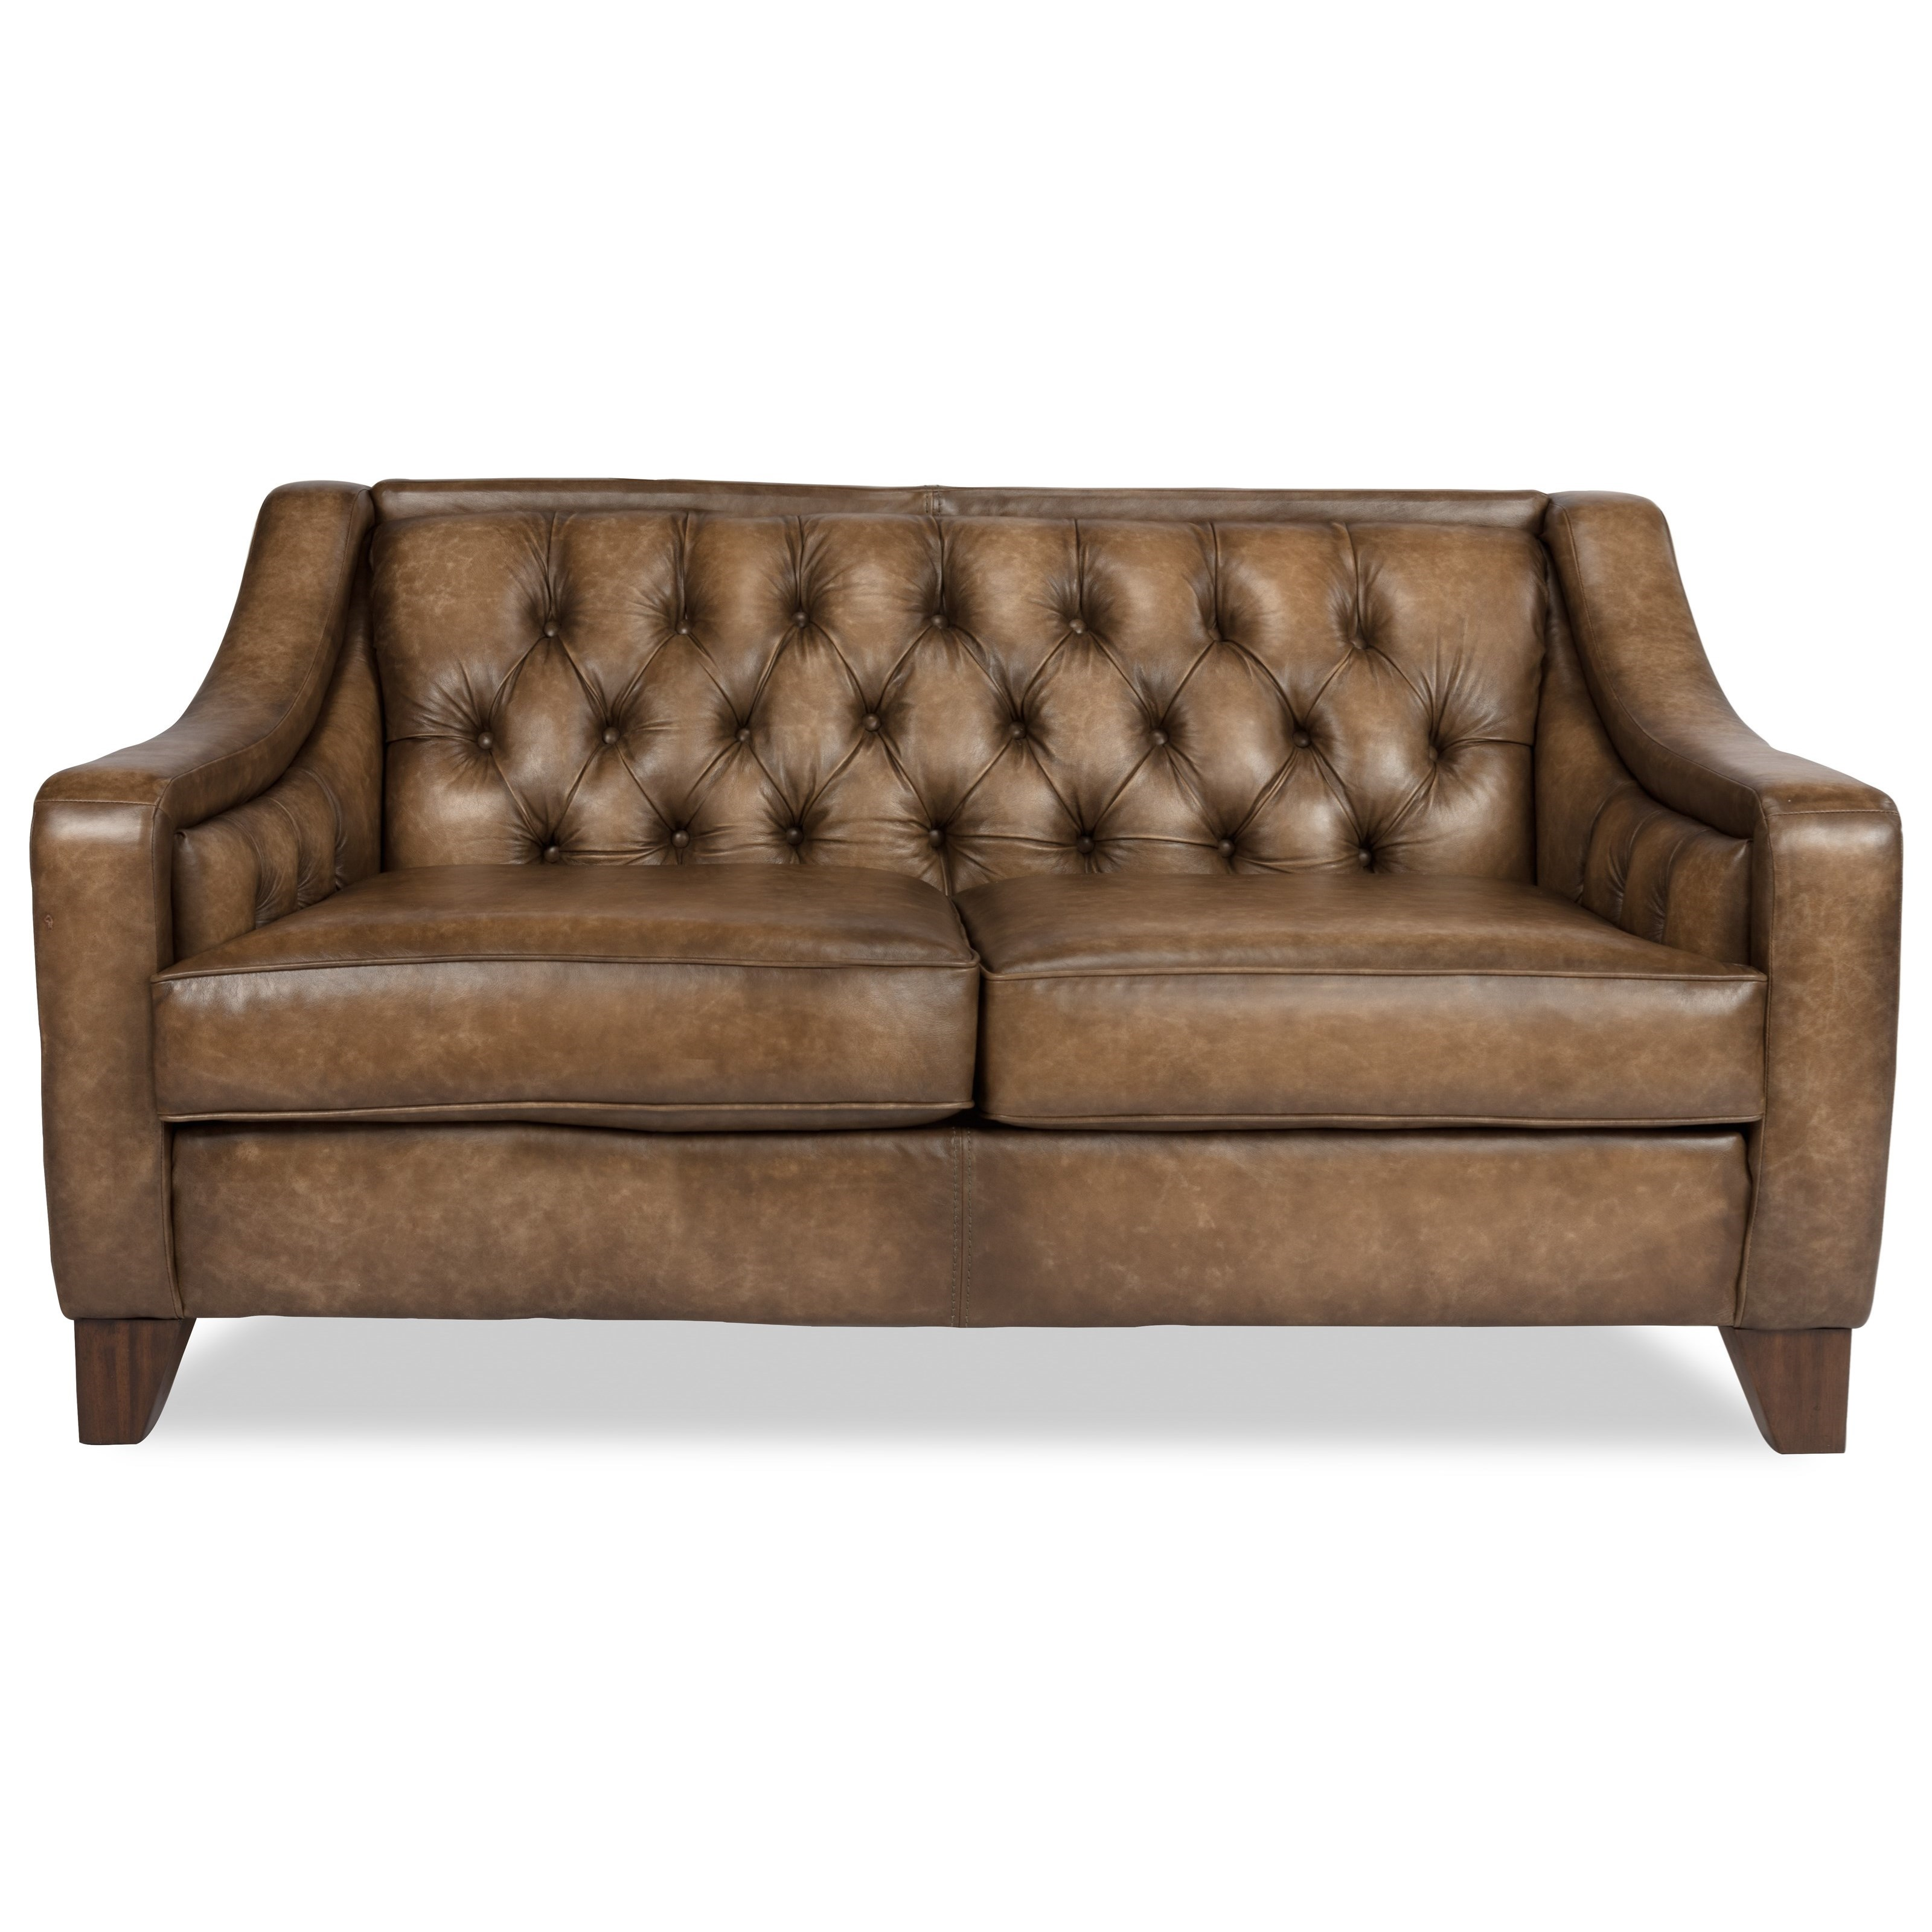 Sullivan Loveseat by Flexsteel at Rooms and Rest